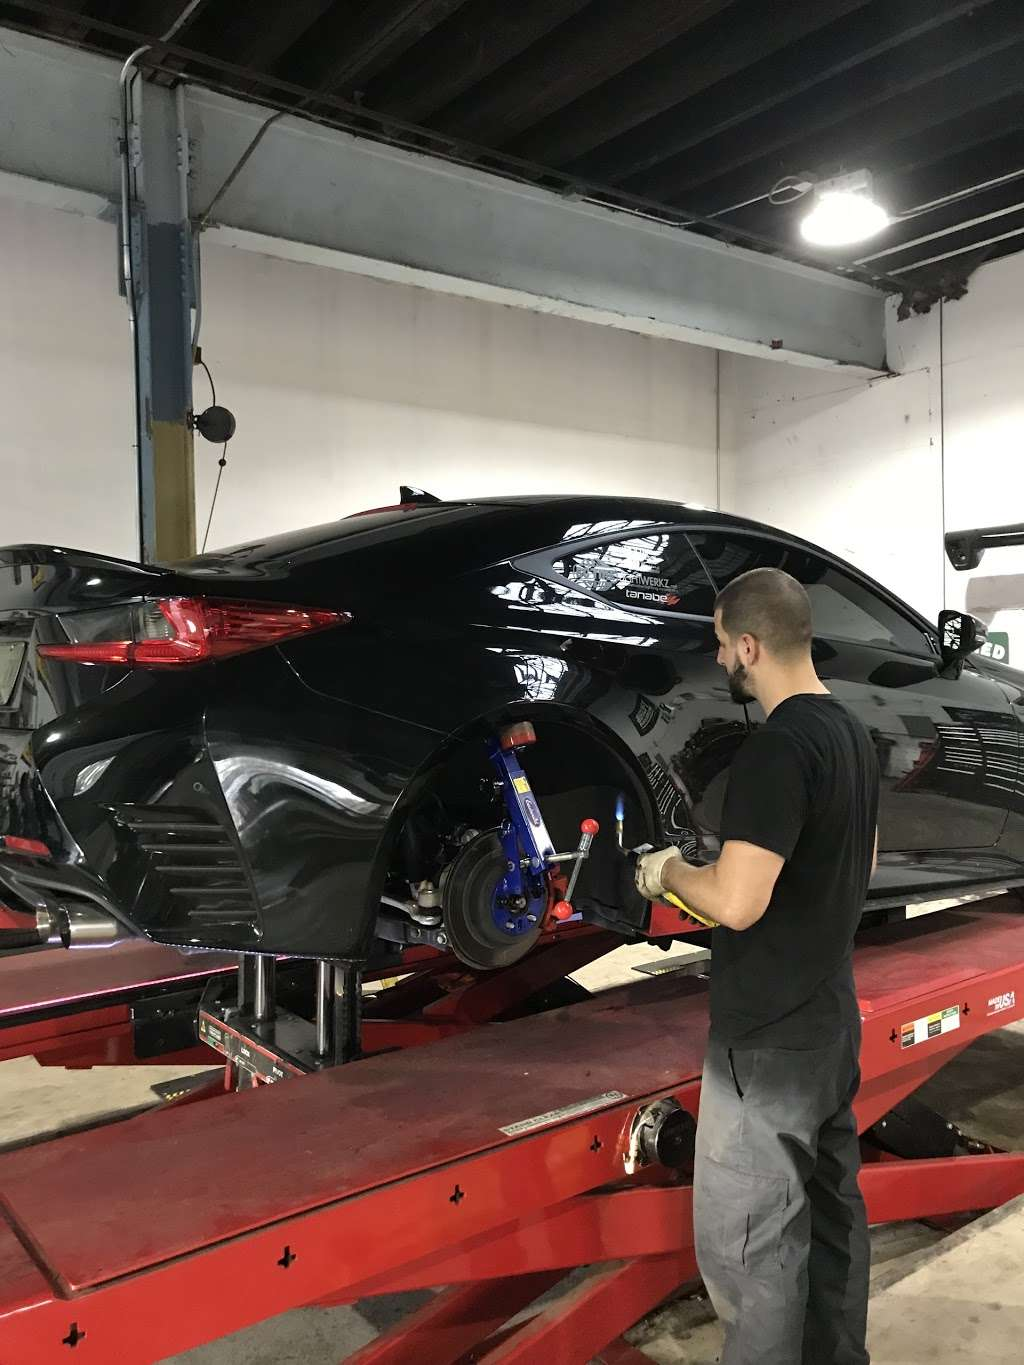 The Stance Shop - car repair  | Photo 4 of 10 | Address: 20-02 29th St, Astoria, NY 11105, USA | Phone: (917) 435-6372